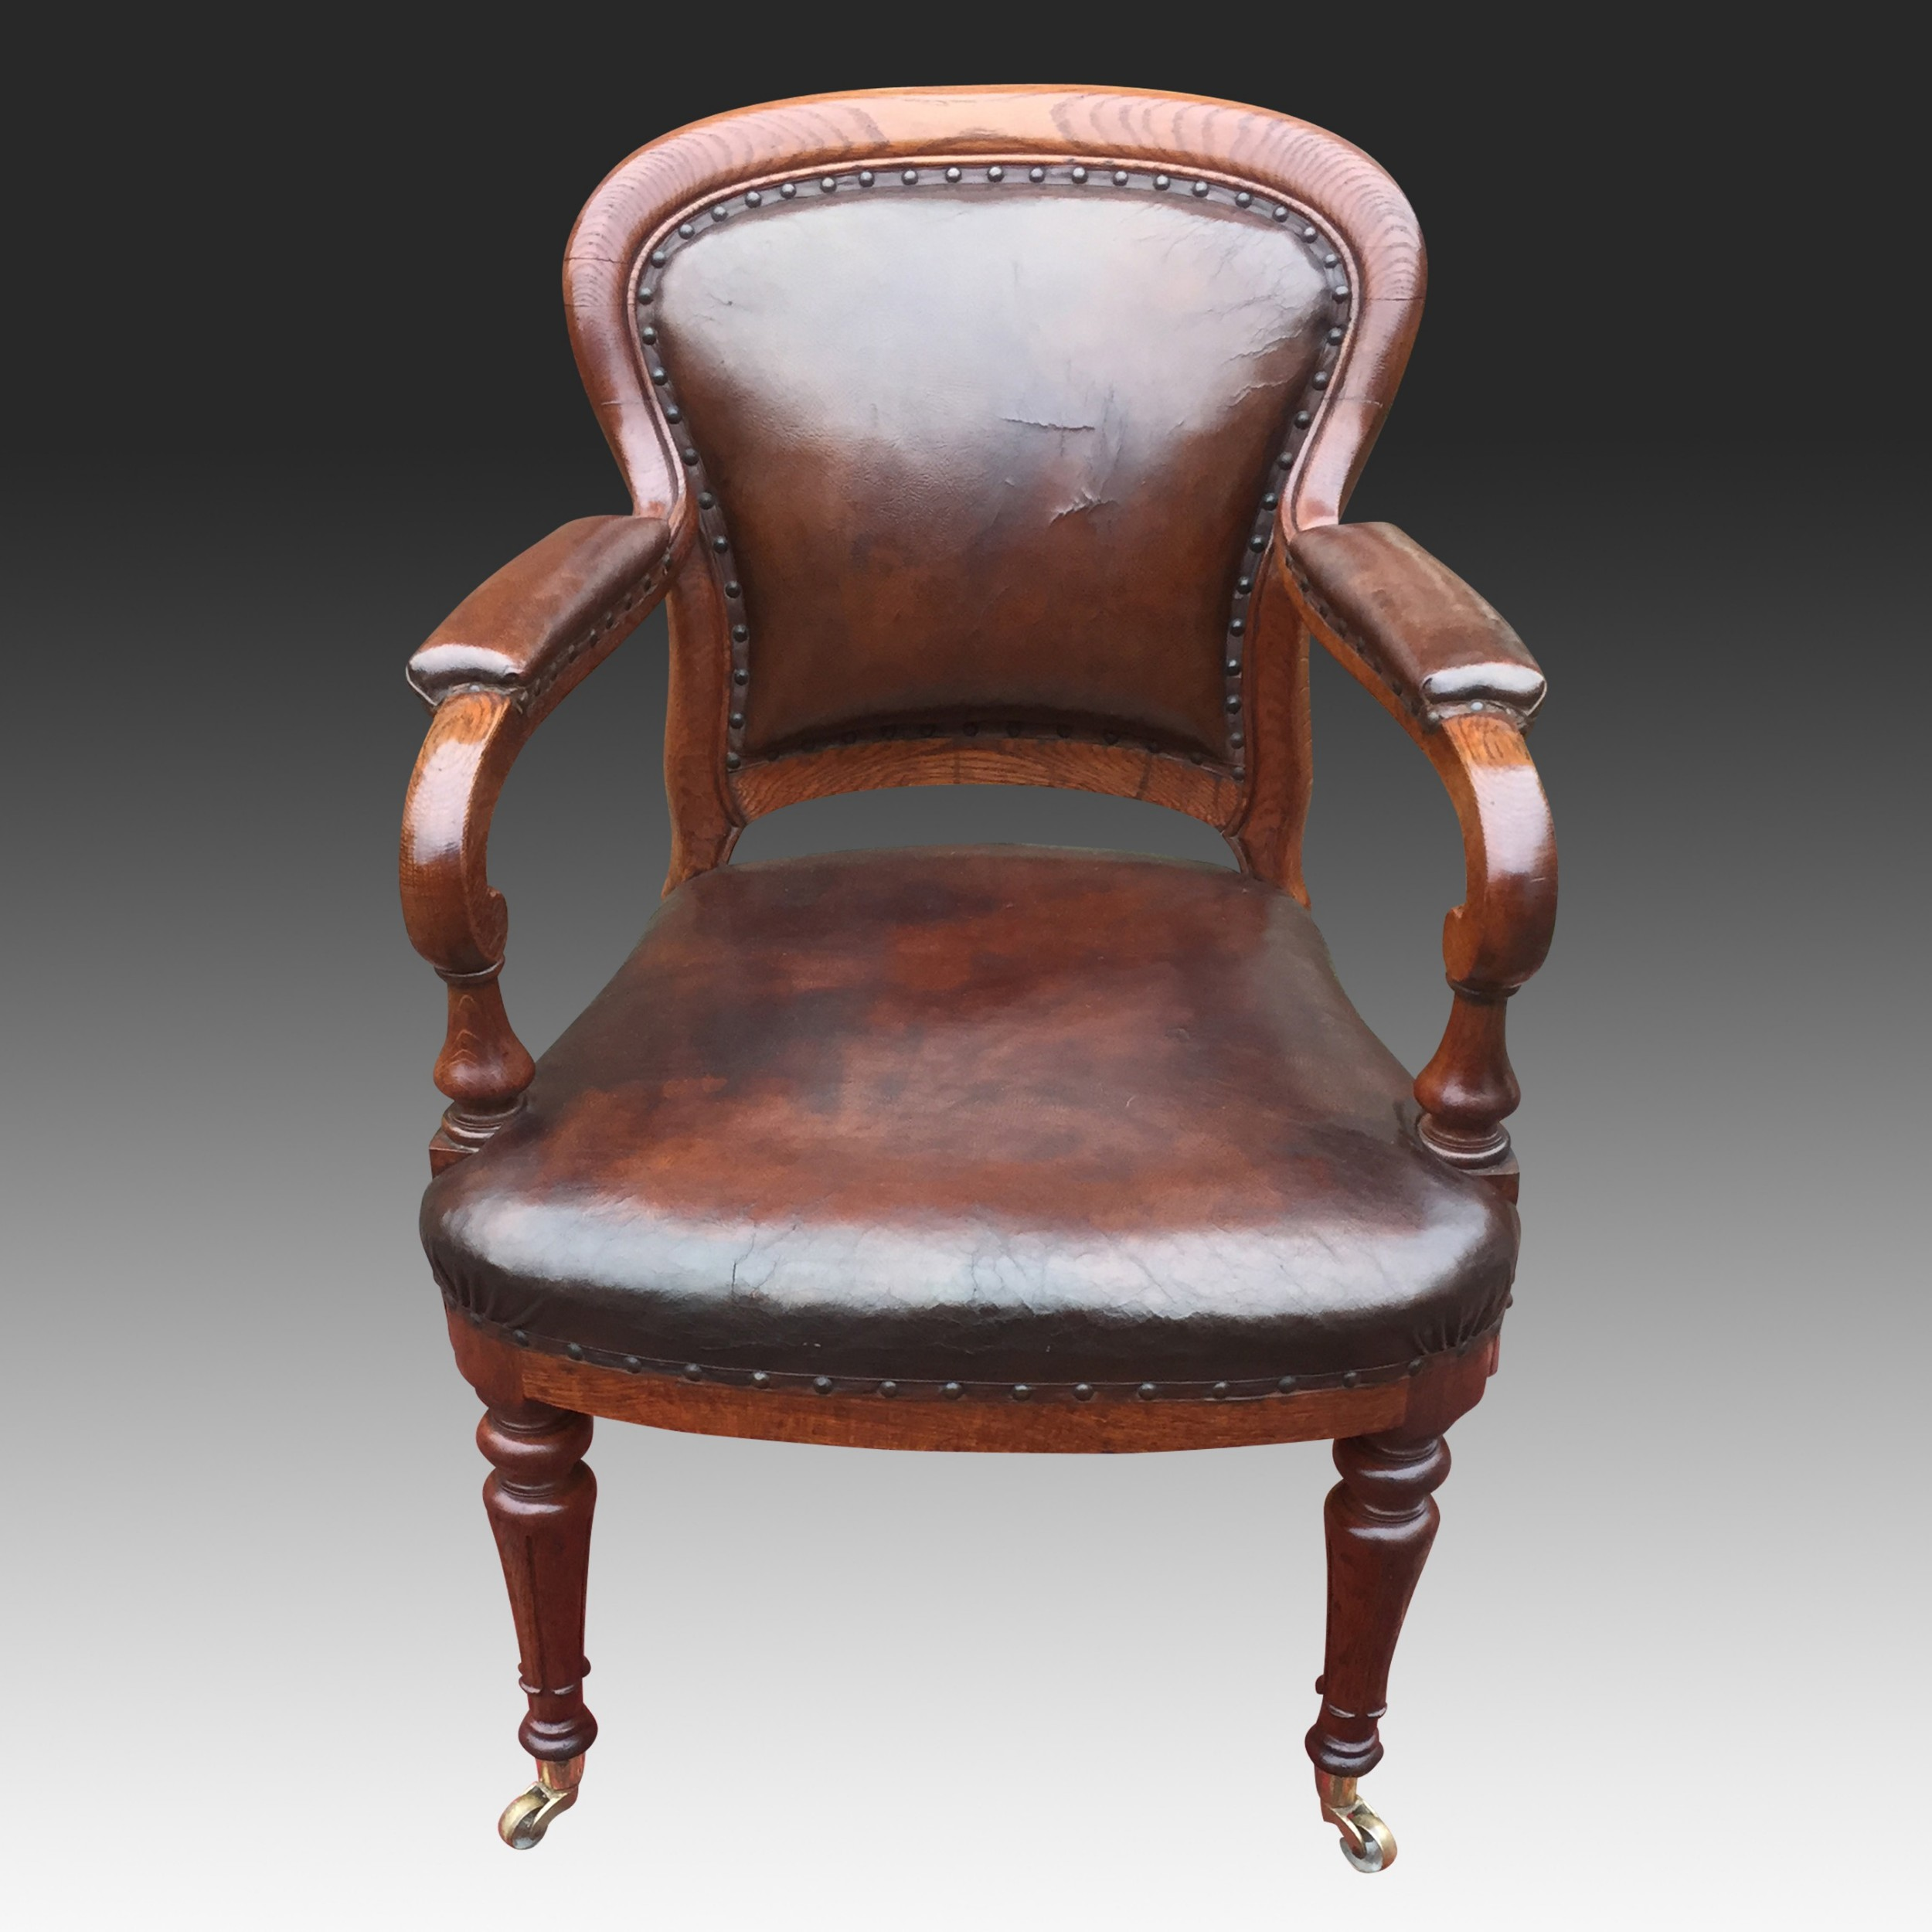 antique oak and leather desk armchair by gillow circa 1840